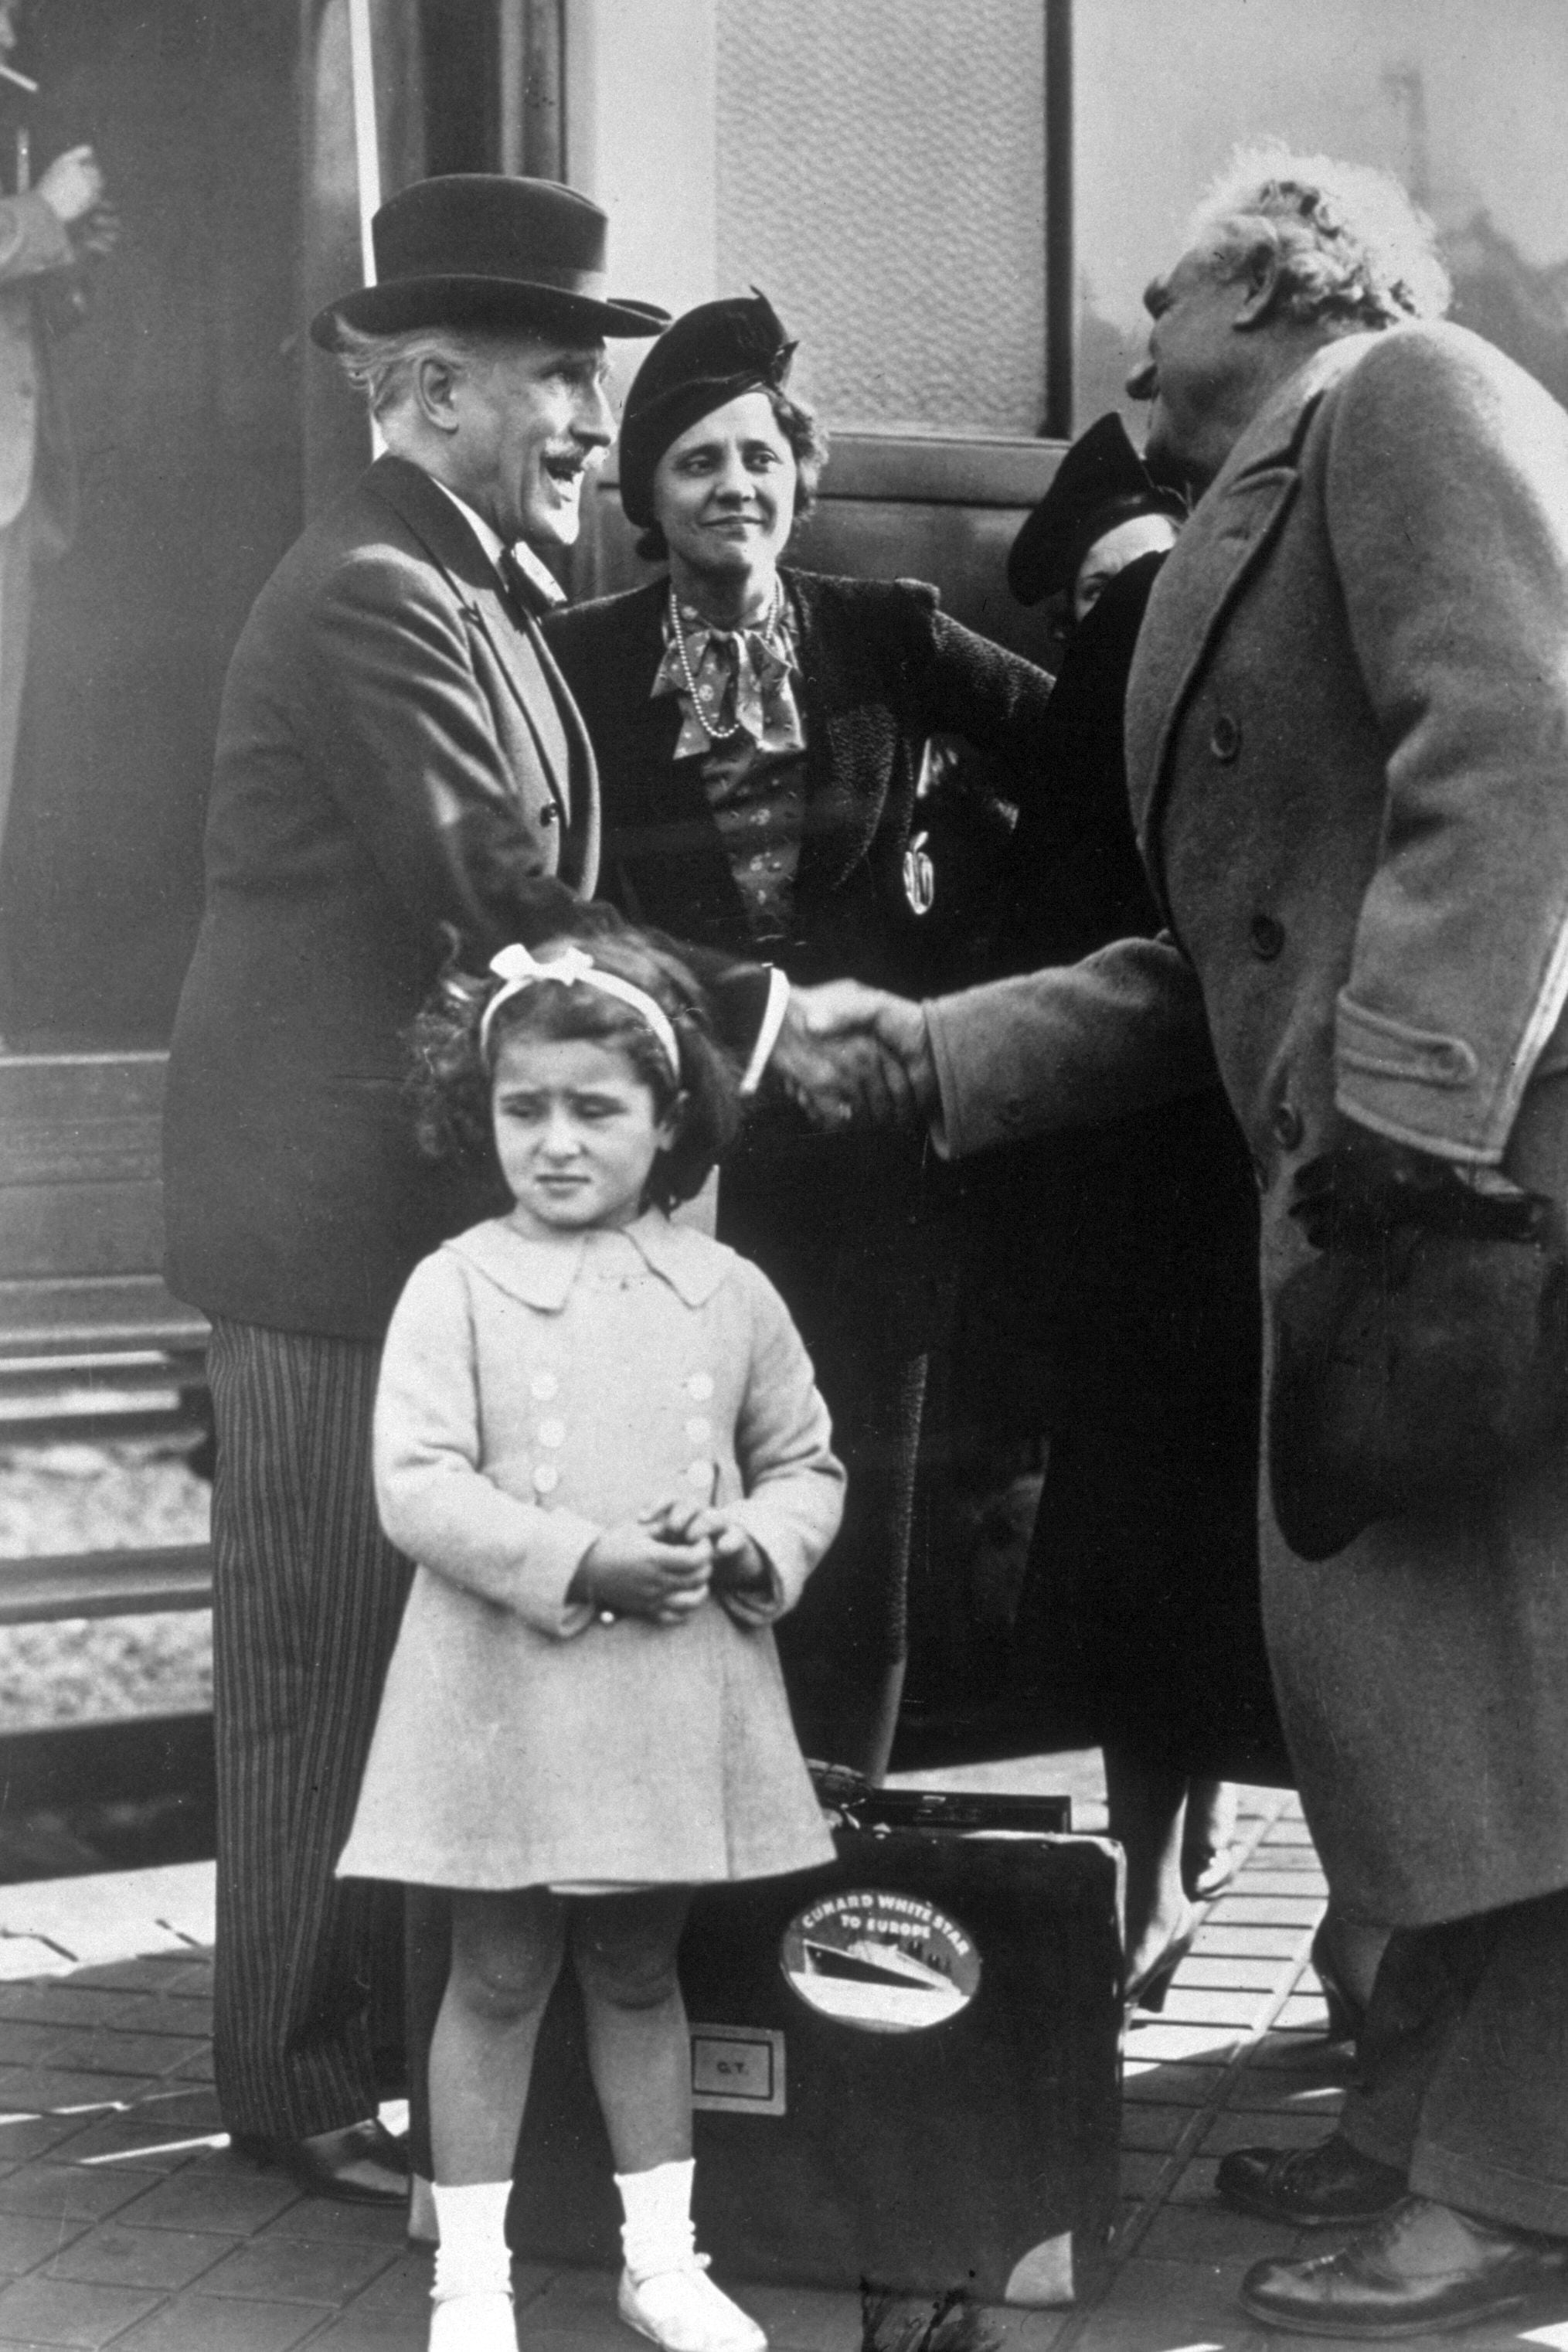 1607253854319_21 1939 circa Toscanini con nipote GettyImages-3311256.jpg - 1939 circa. Arturo Toscanini con la moglie e la nipote.